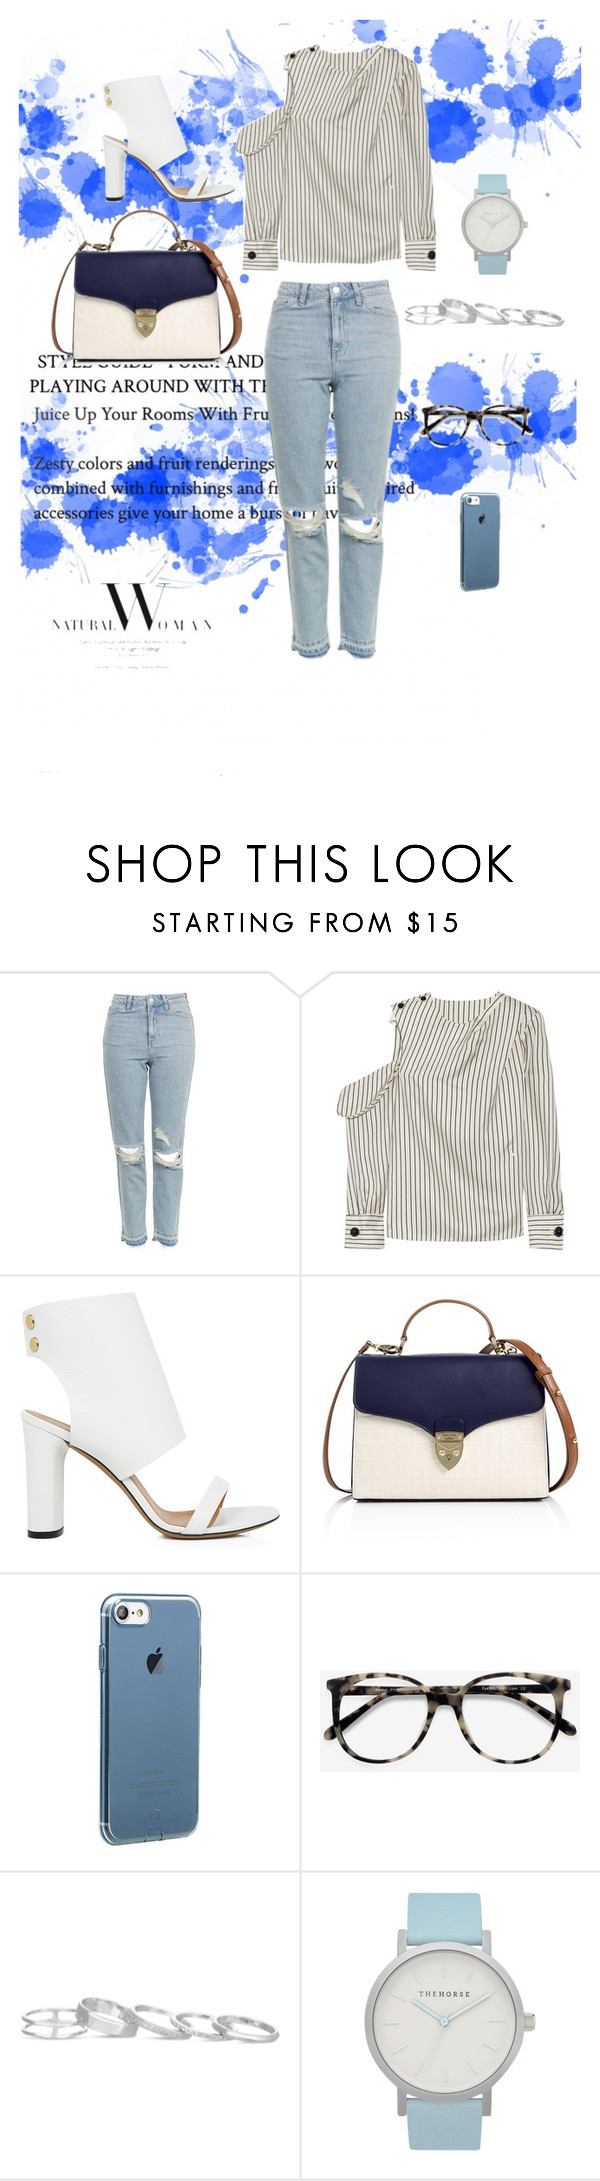 """""""Untitled #403"""" by itsafagh ❤ liked on Polyvore featuring Topshop, Monse, IRO, Aspinal of London, Ace, Kendra Scott and The Horse"""